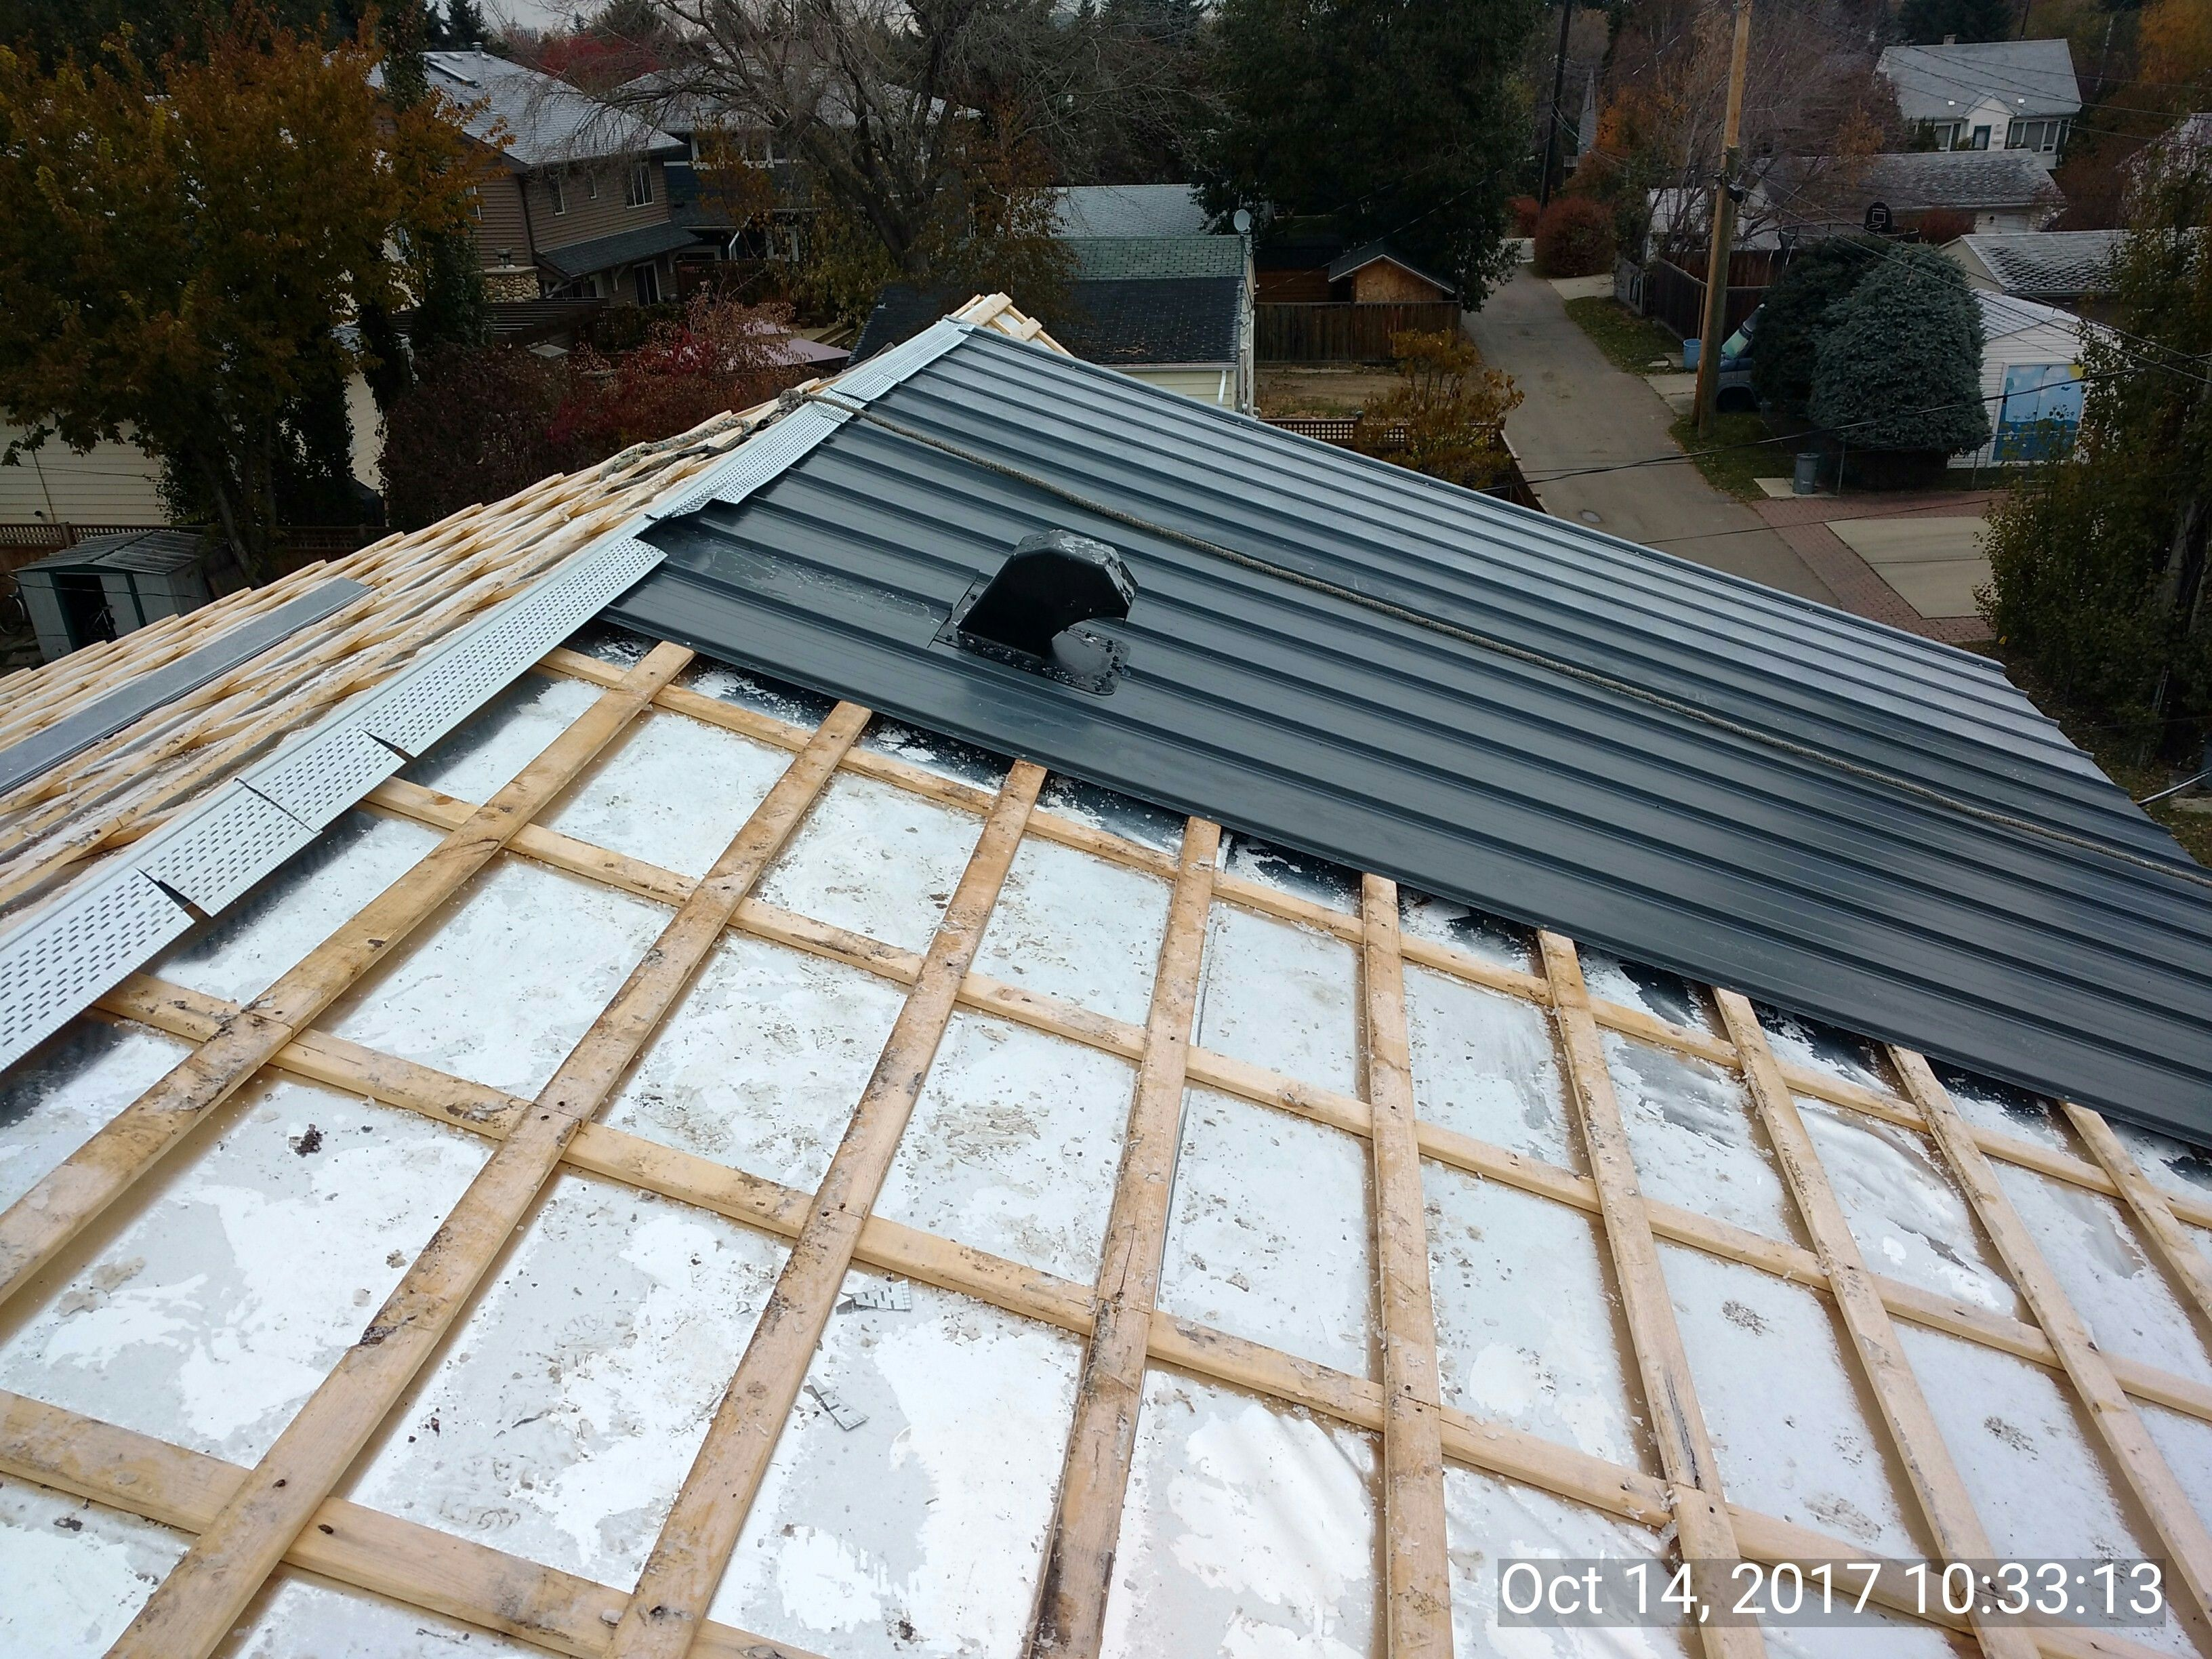 Our Unique Vented Deck Roofing System With Heat Reflective Underlayment Standing Seam Standing Seam Roof Roof Repair